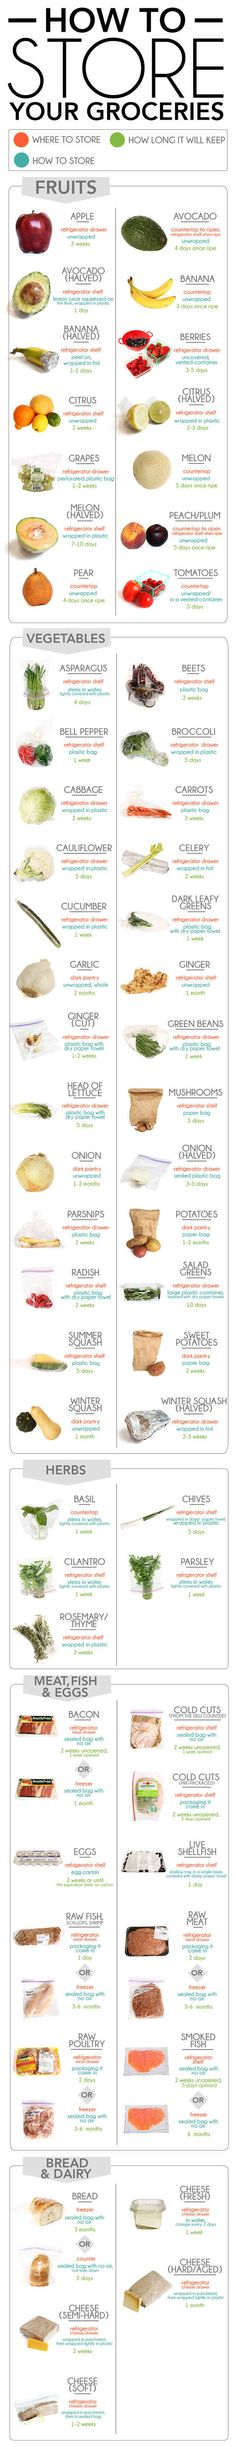 storing groceries how to